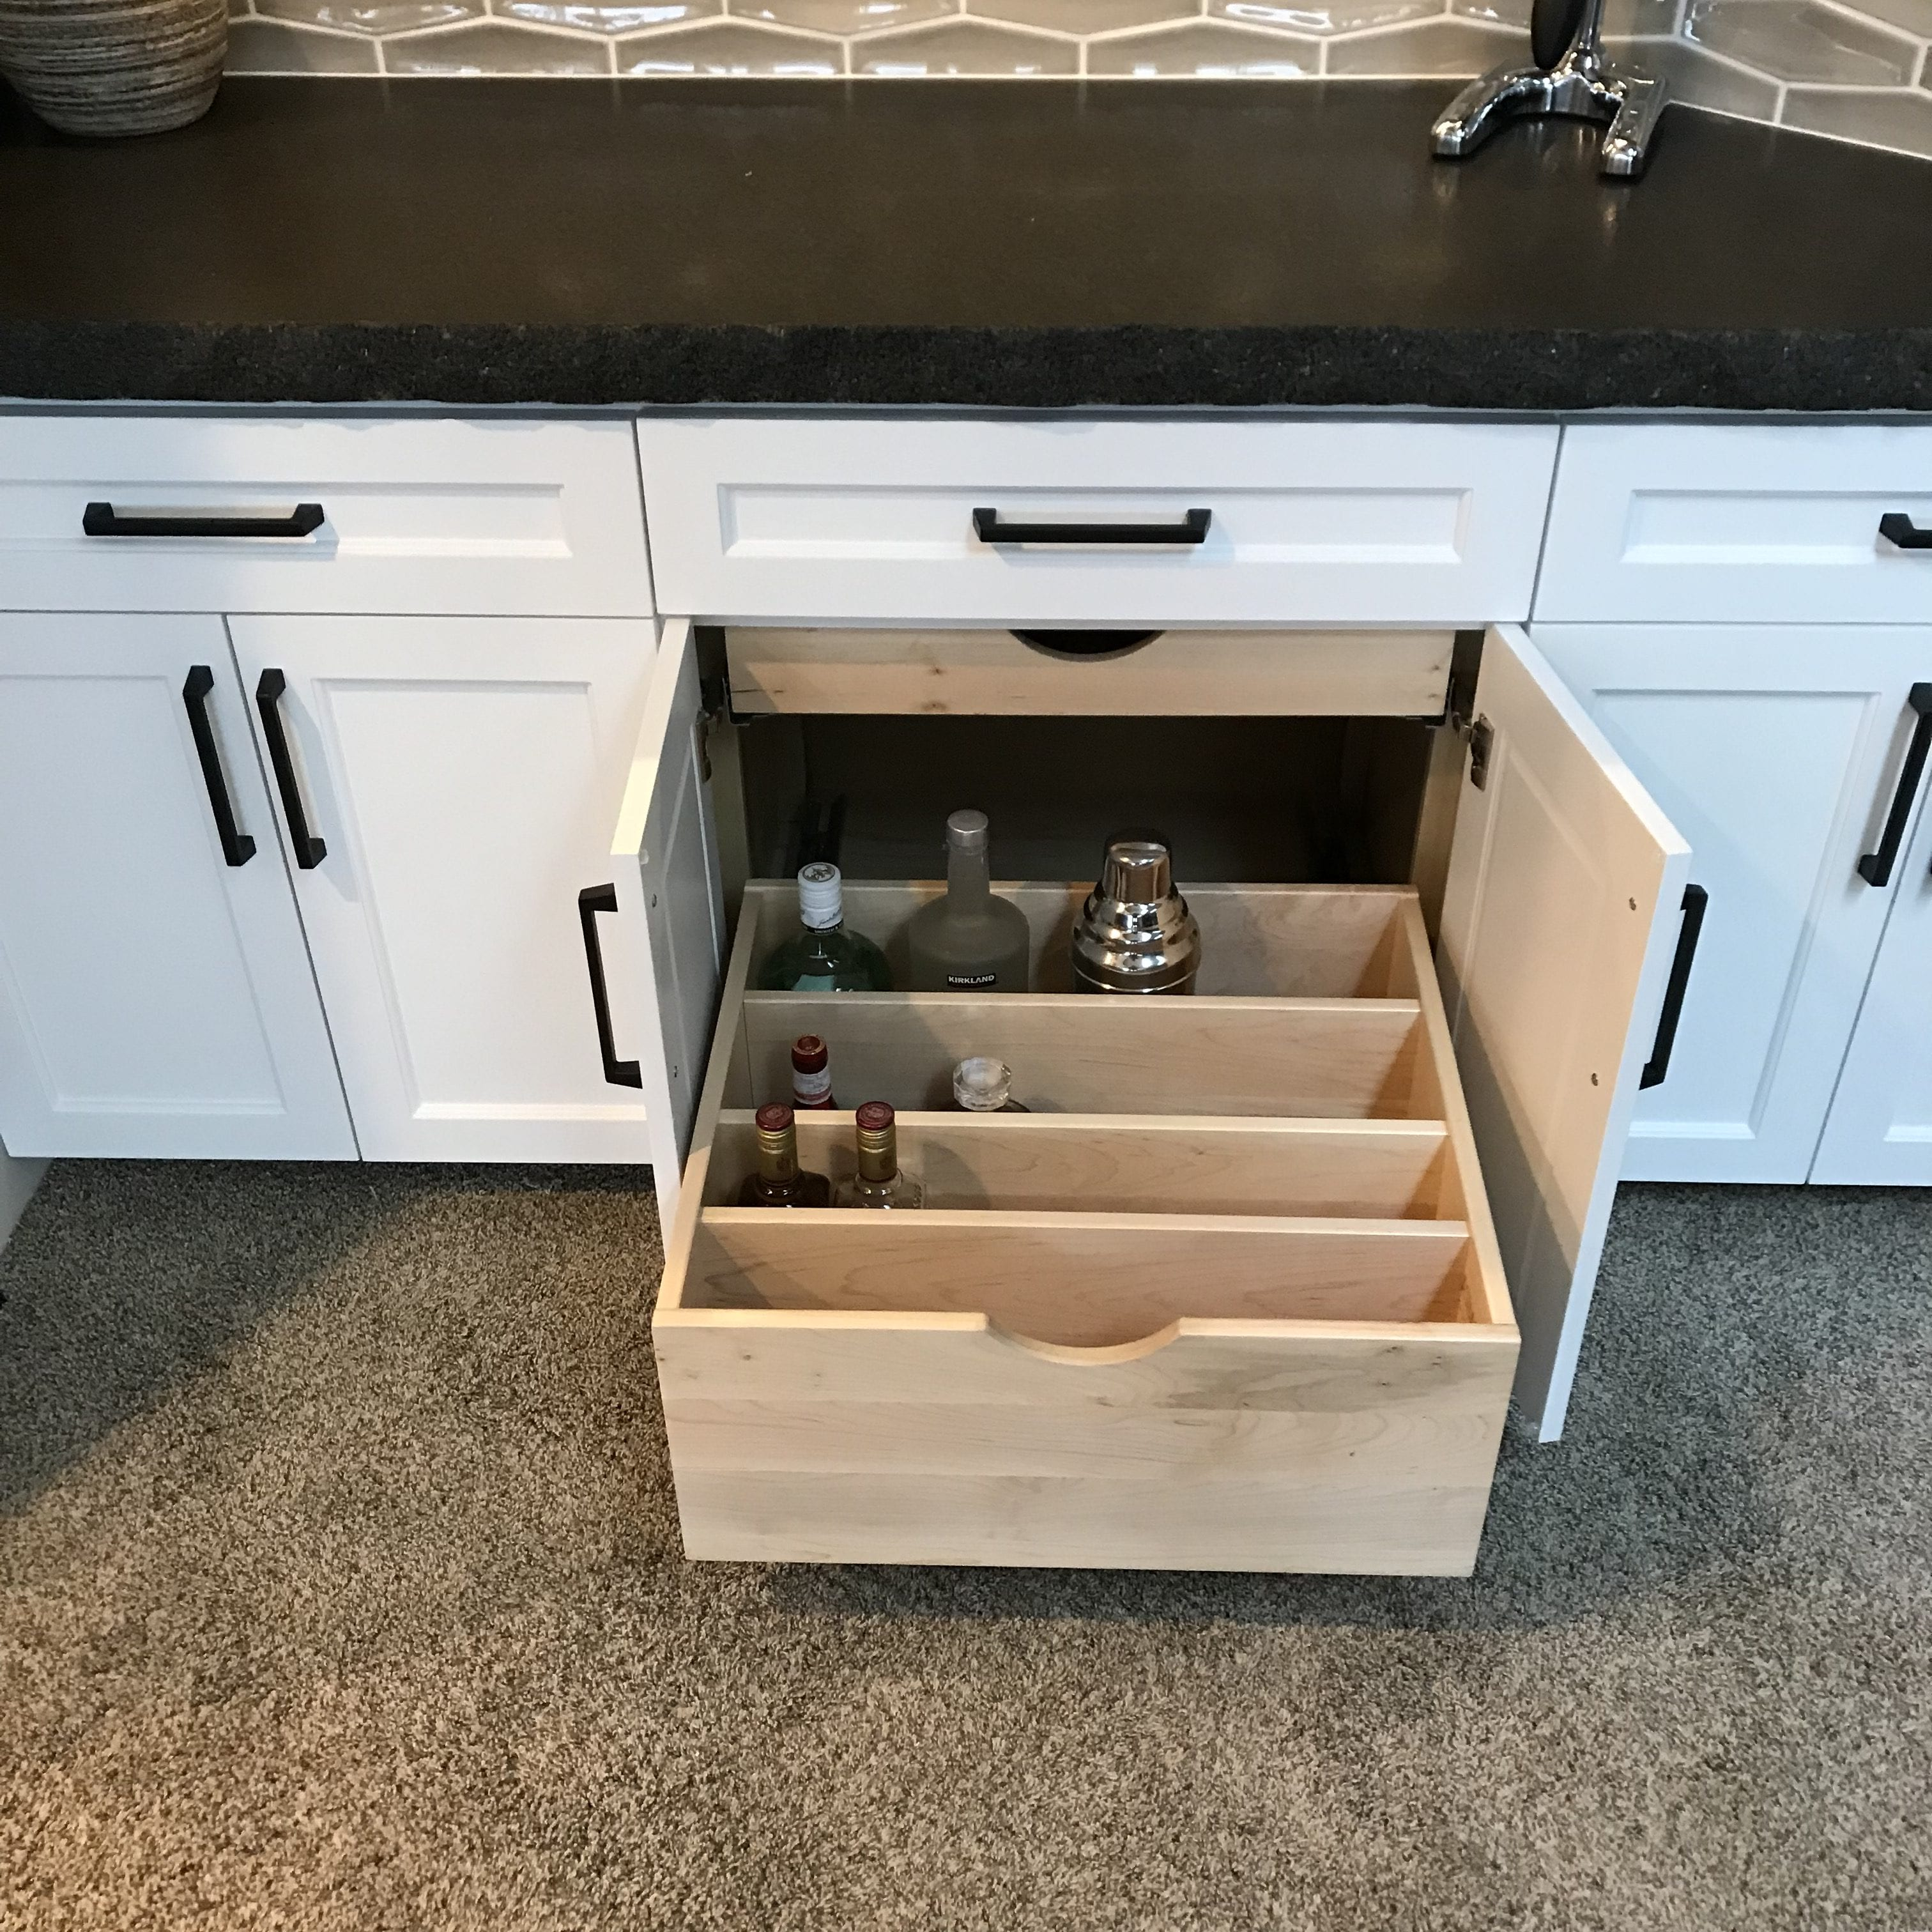 Dry Bar Liqour Pull Out Drawer Kashas Design Build